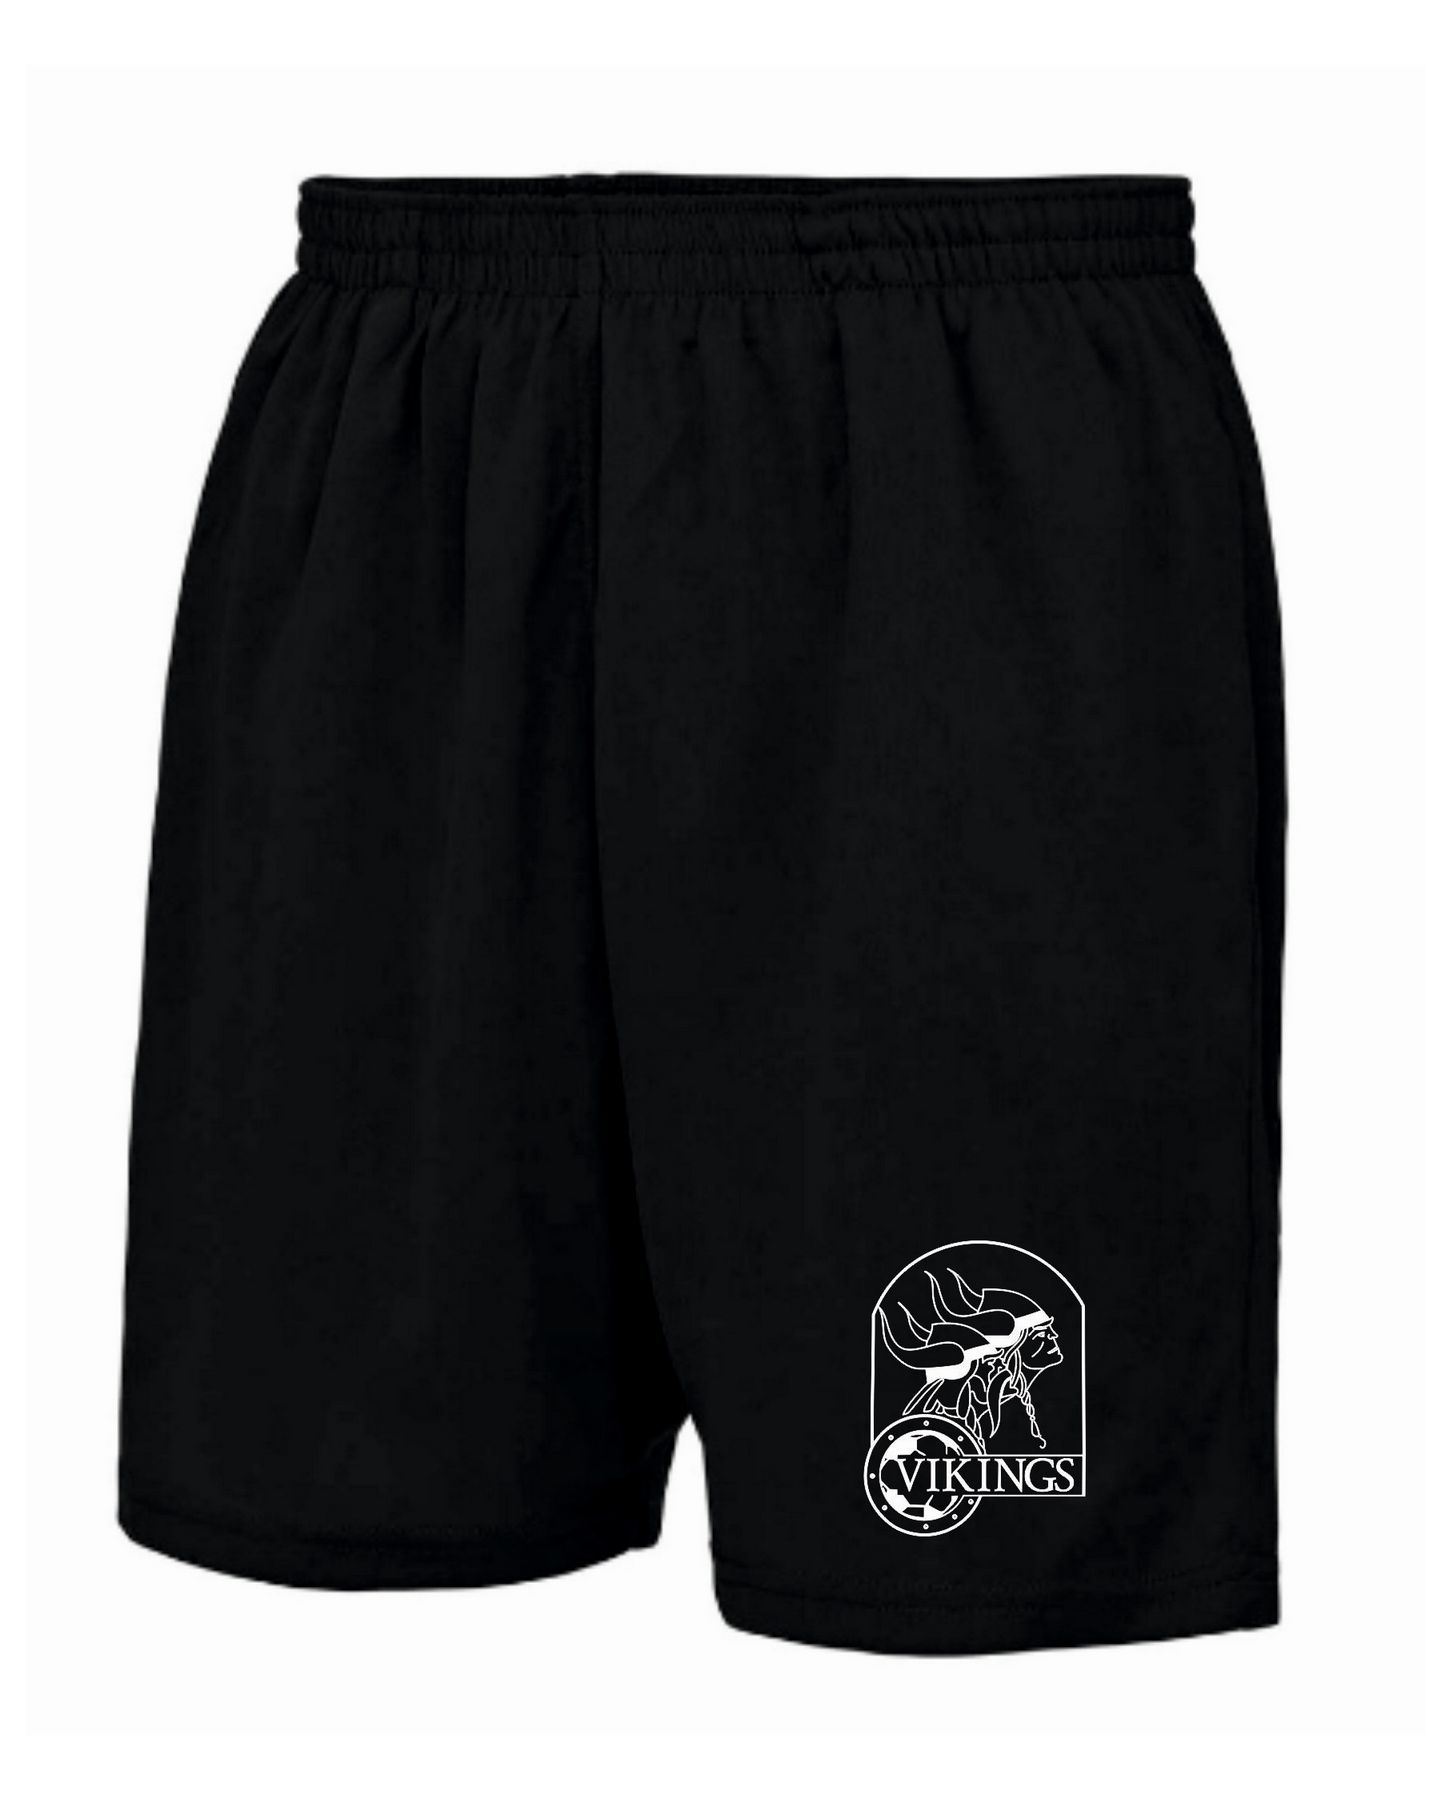 Vikings match and training shorts